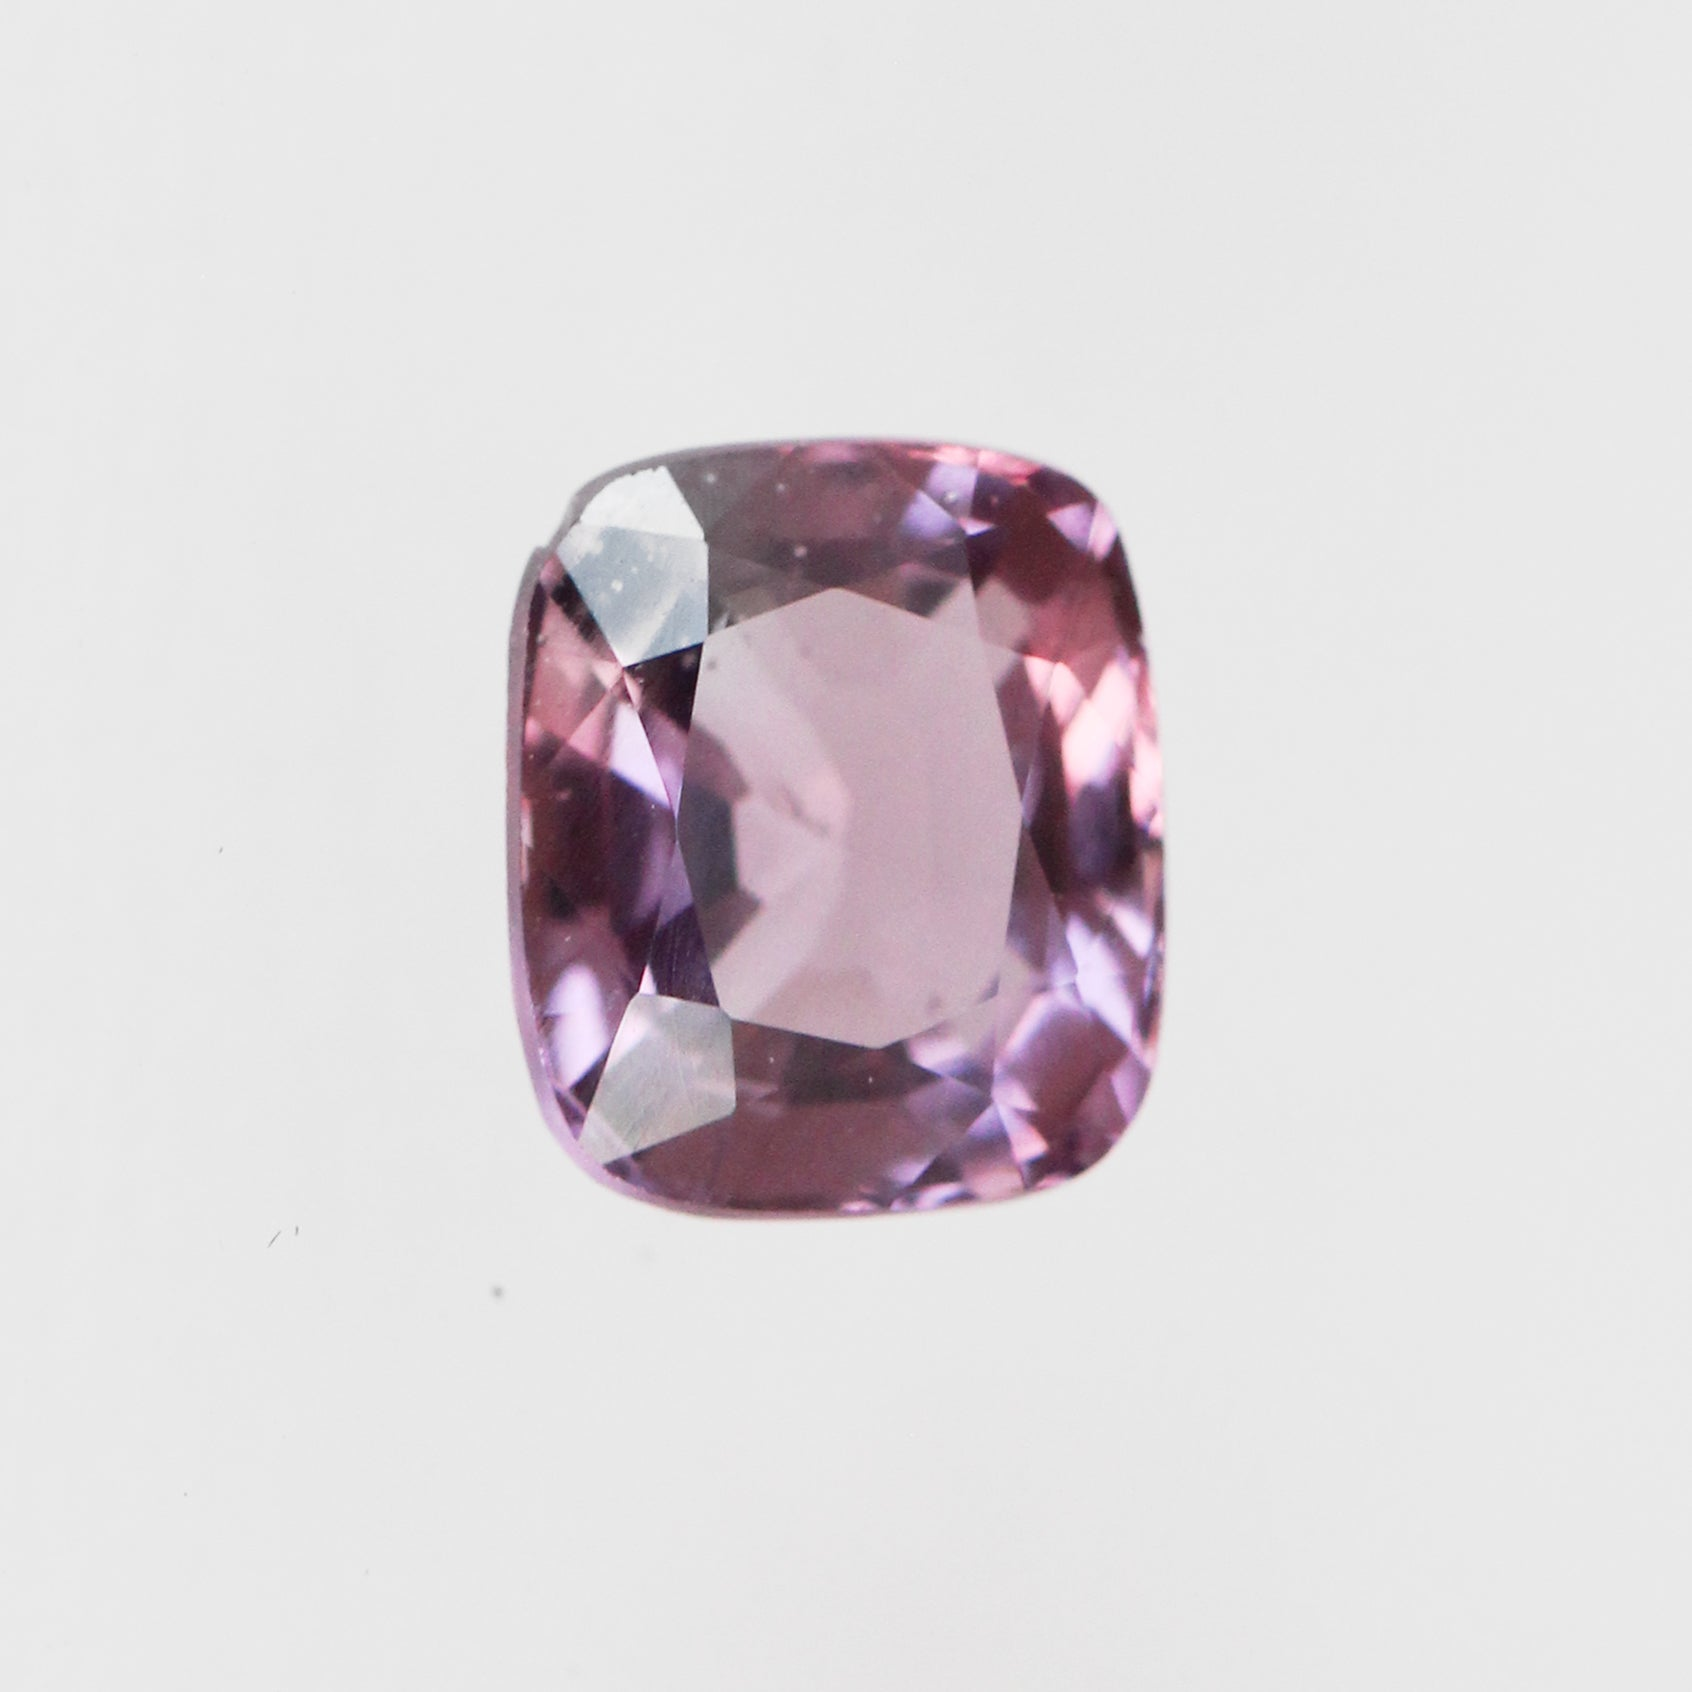 1.59 Carat Emerald Spinel - Inventory Code ESP159 - Celestial Diamonds ® by Midwinter Co.